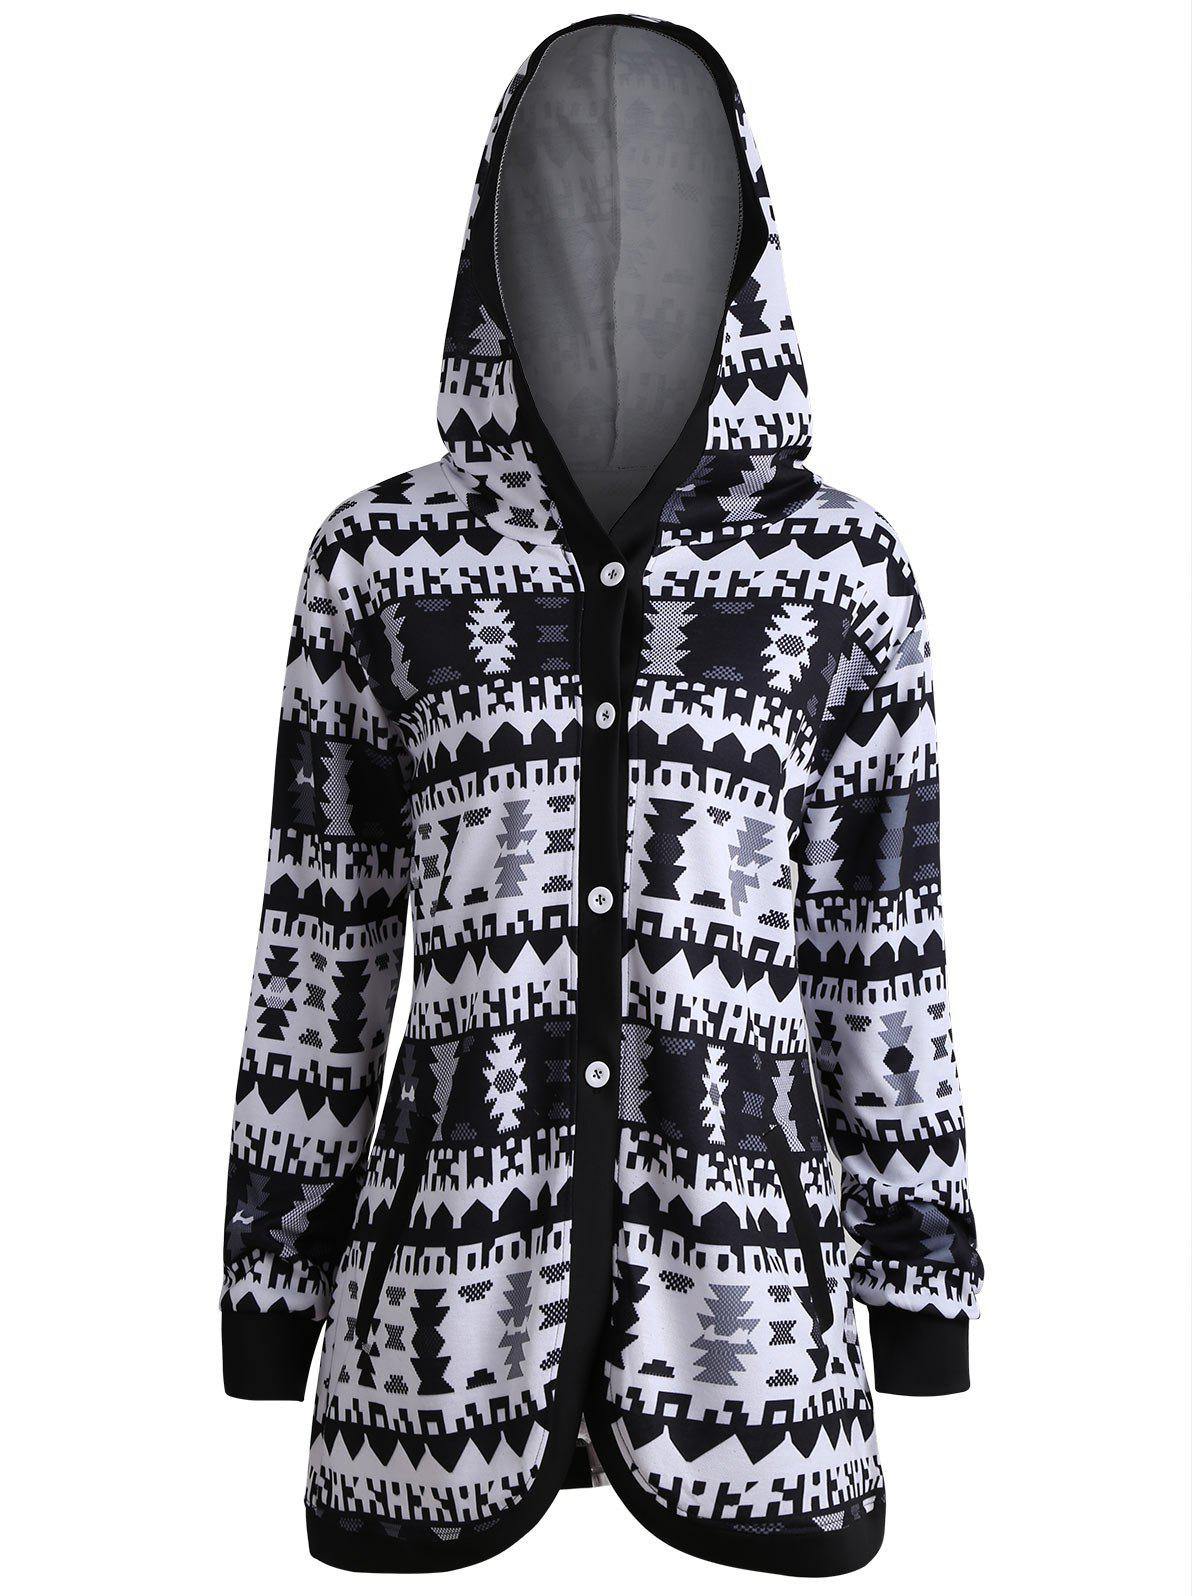 Geometric Button Up Plus Size Hooded CoatWOMEN<br><br>Size: 5XL; Color: BLACK; Clothes Type: Jackets; Material: Cotton Blends,Polyester; Type: Slim; Shirt Length: Regular; Sleeve Length: Full; Collar: Hooded; Closure Type: Single Breasted; Pattern Type: Geometric; Embellishment: Pockets; Style: Fashion; Season: Fall,Winter; Weight: 0.5300kg; Package Contents: 1 x Coat;